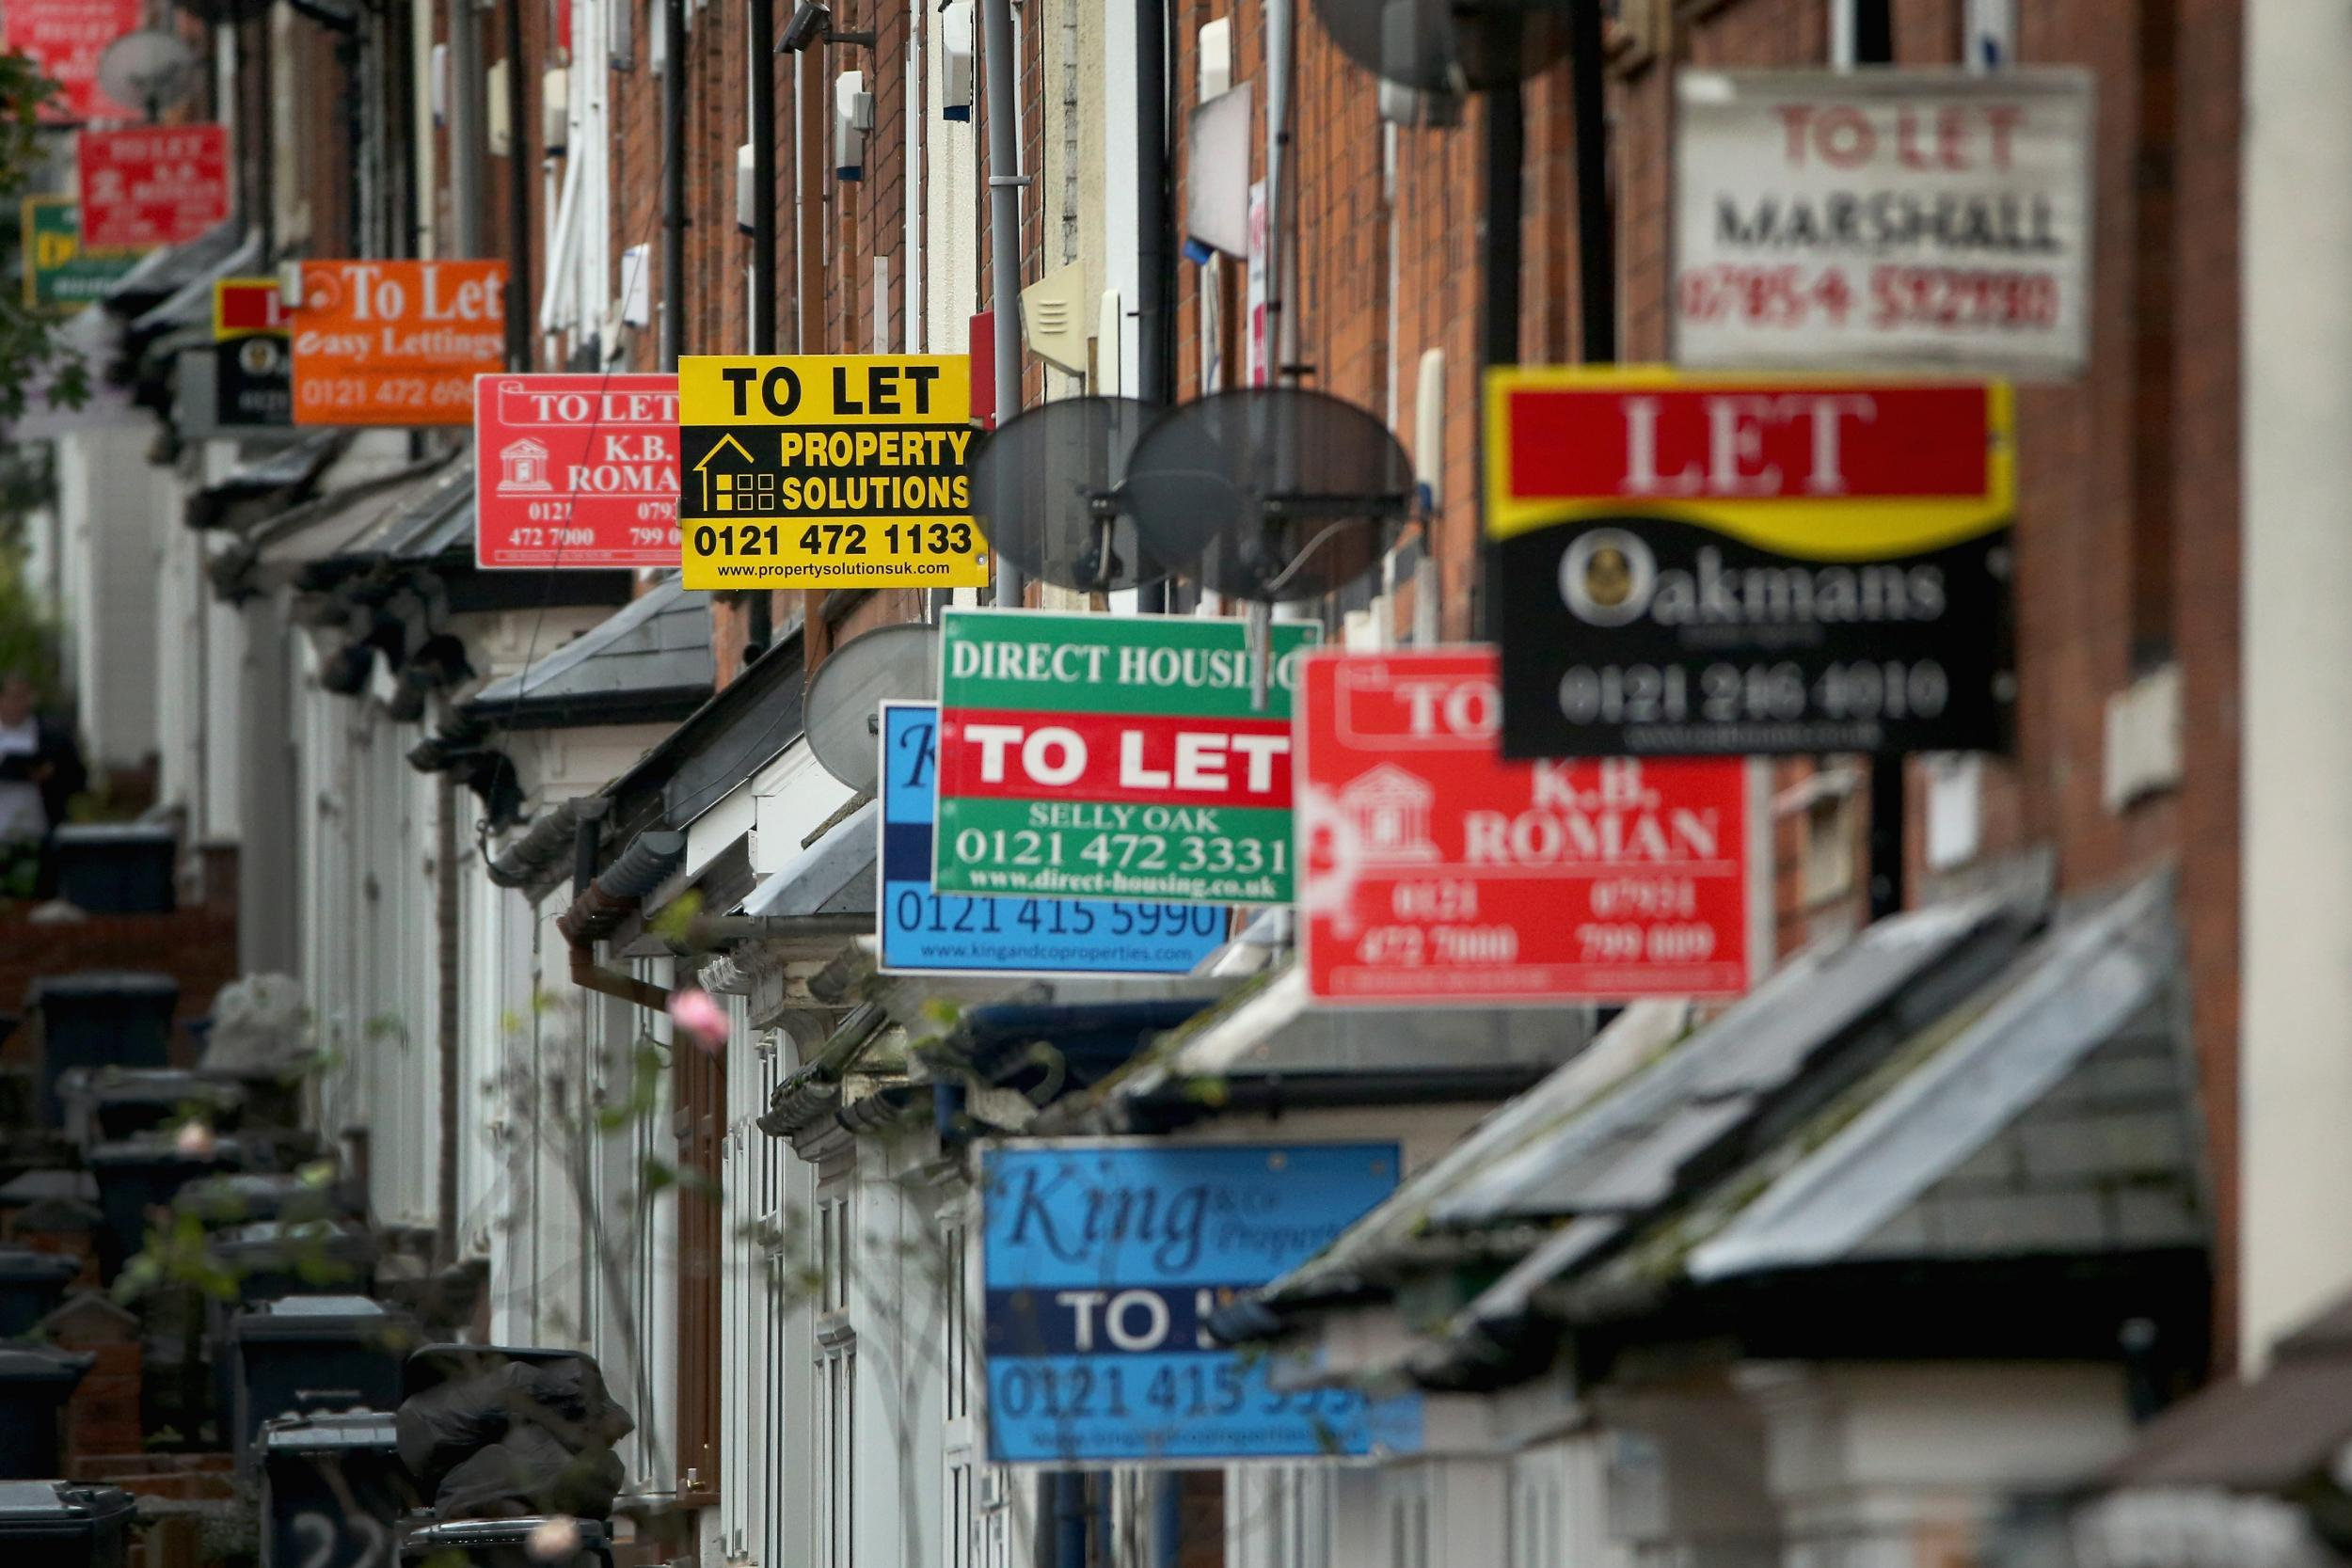 London property prices set to drop in 2018